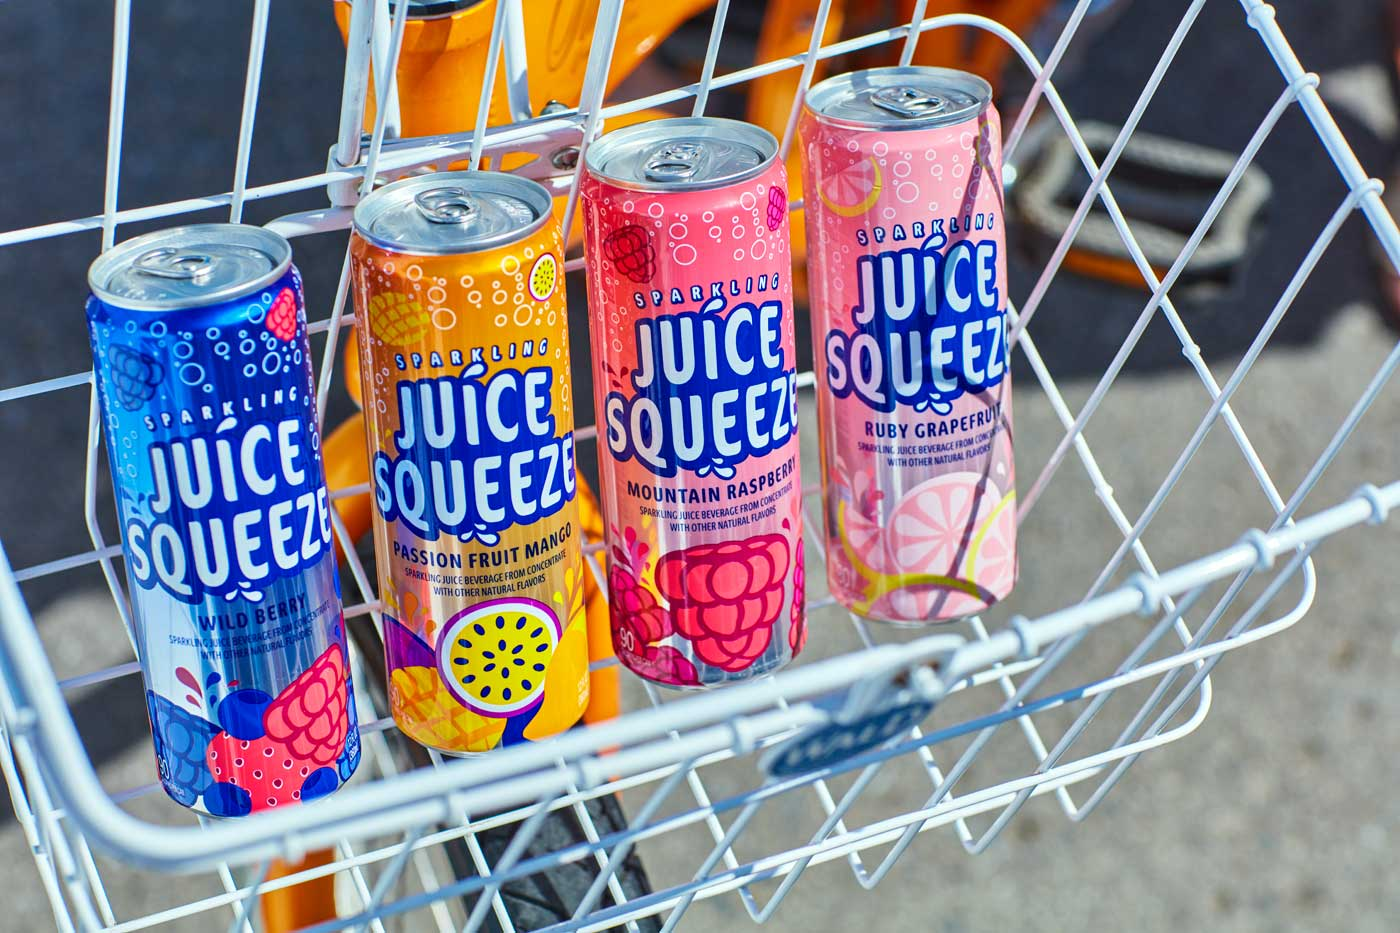 Juice Squeeze Variety Pack